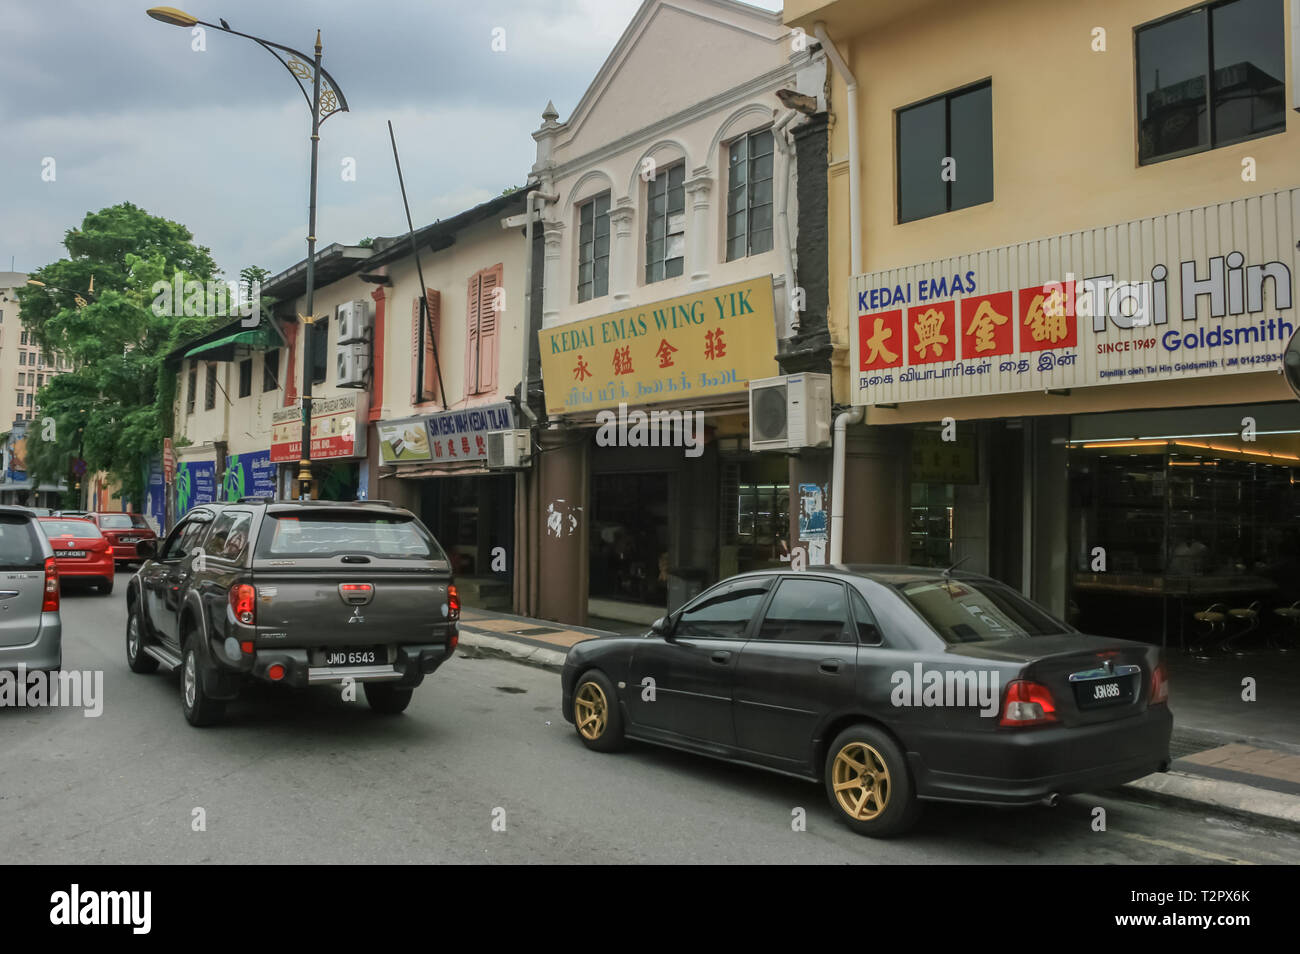 Traditional shophouses in the heritage district of Johor Bahru, Malaysia - Stock Image